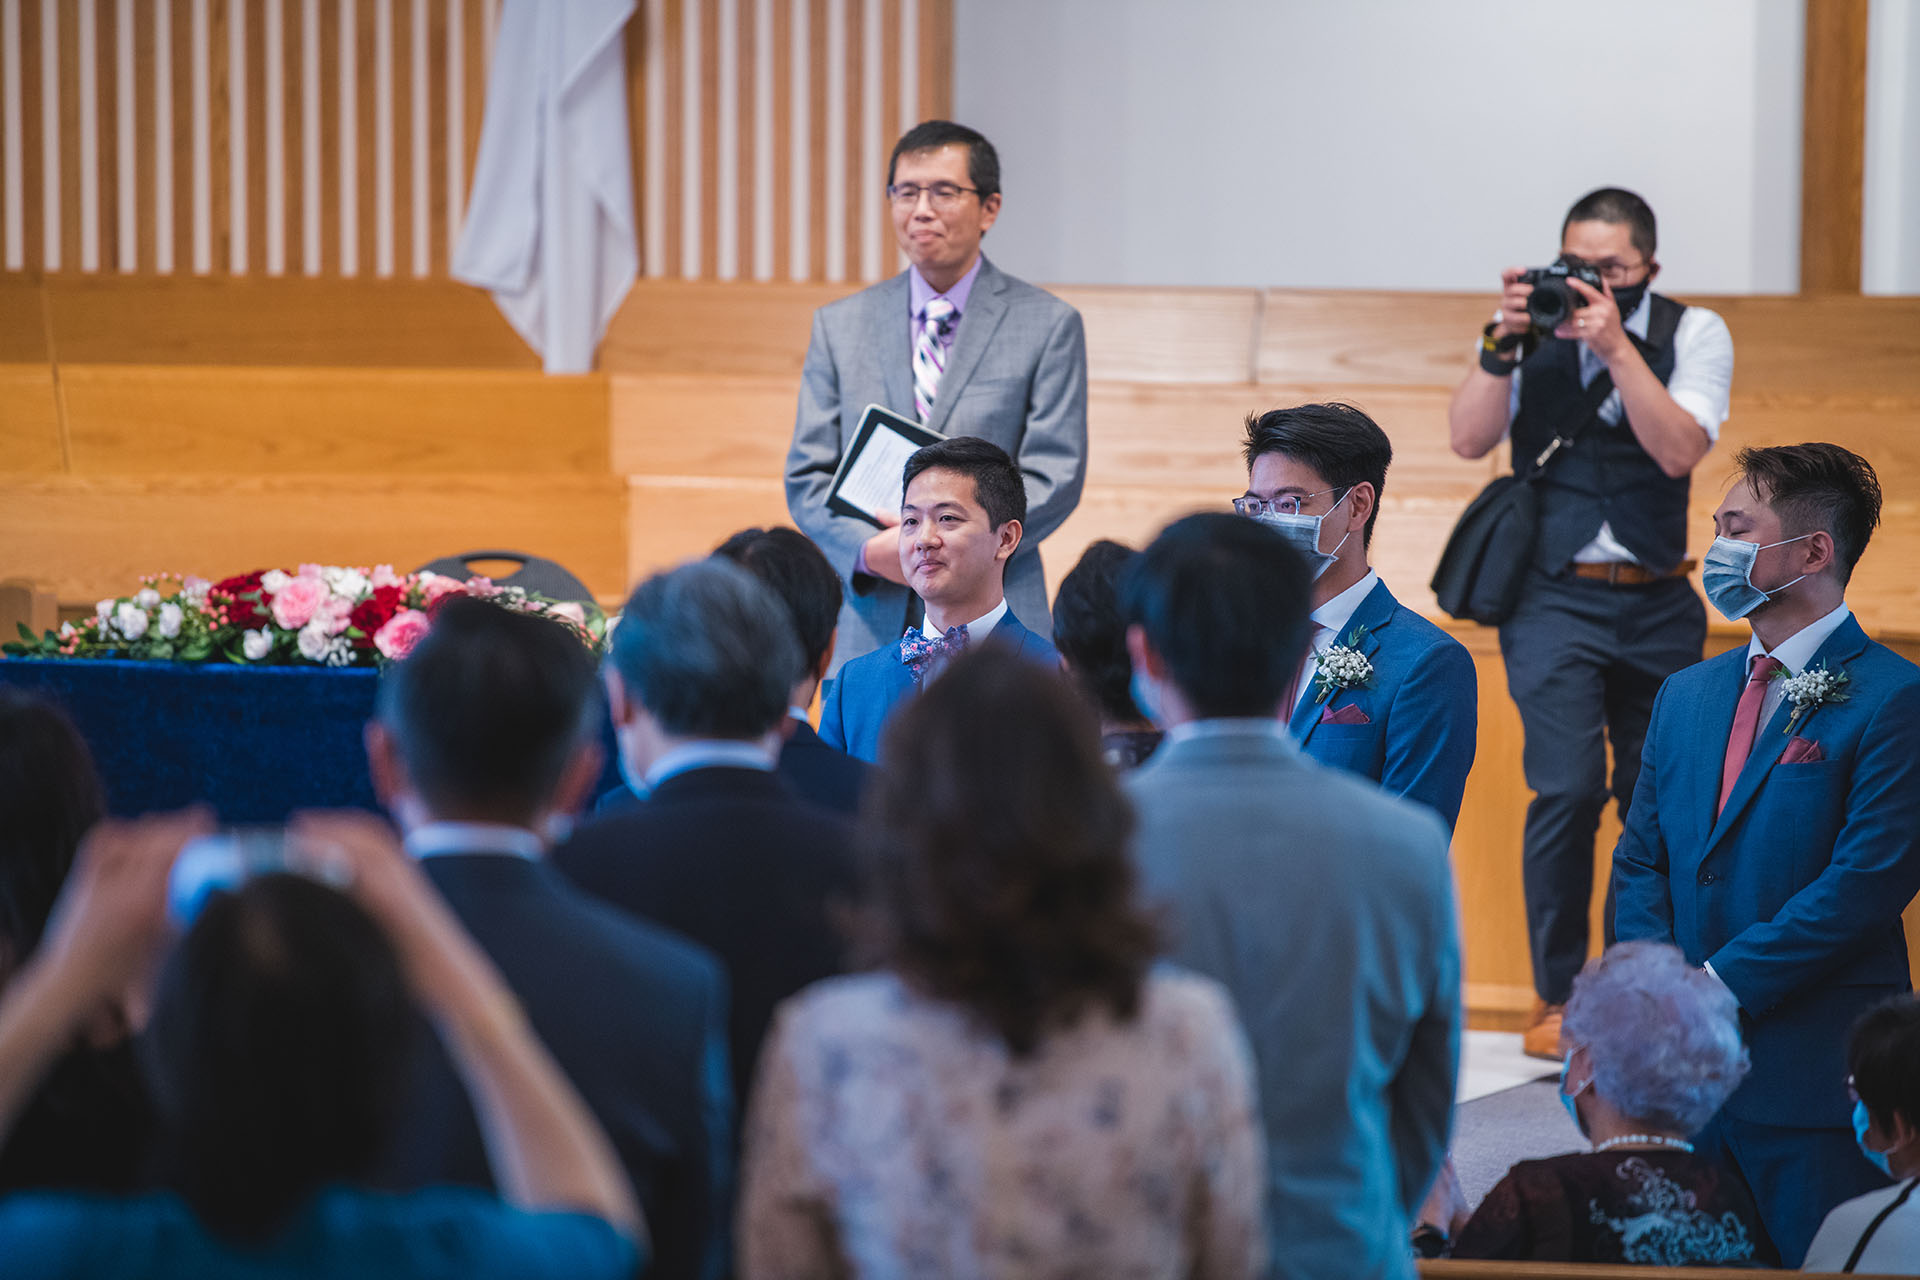 Christopher Luk Toronto Markham Wedding Photographer Church Ceremony Behind the Scenes